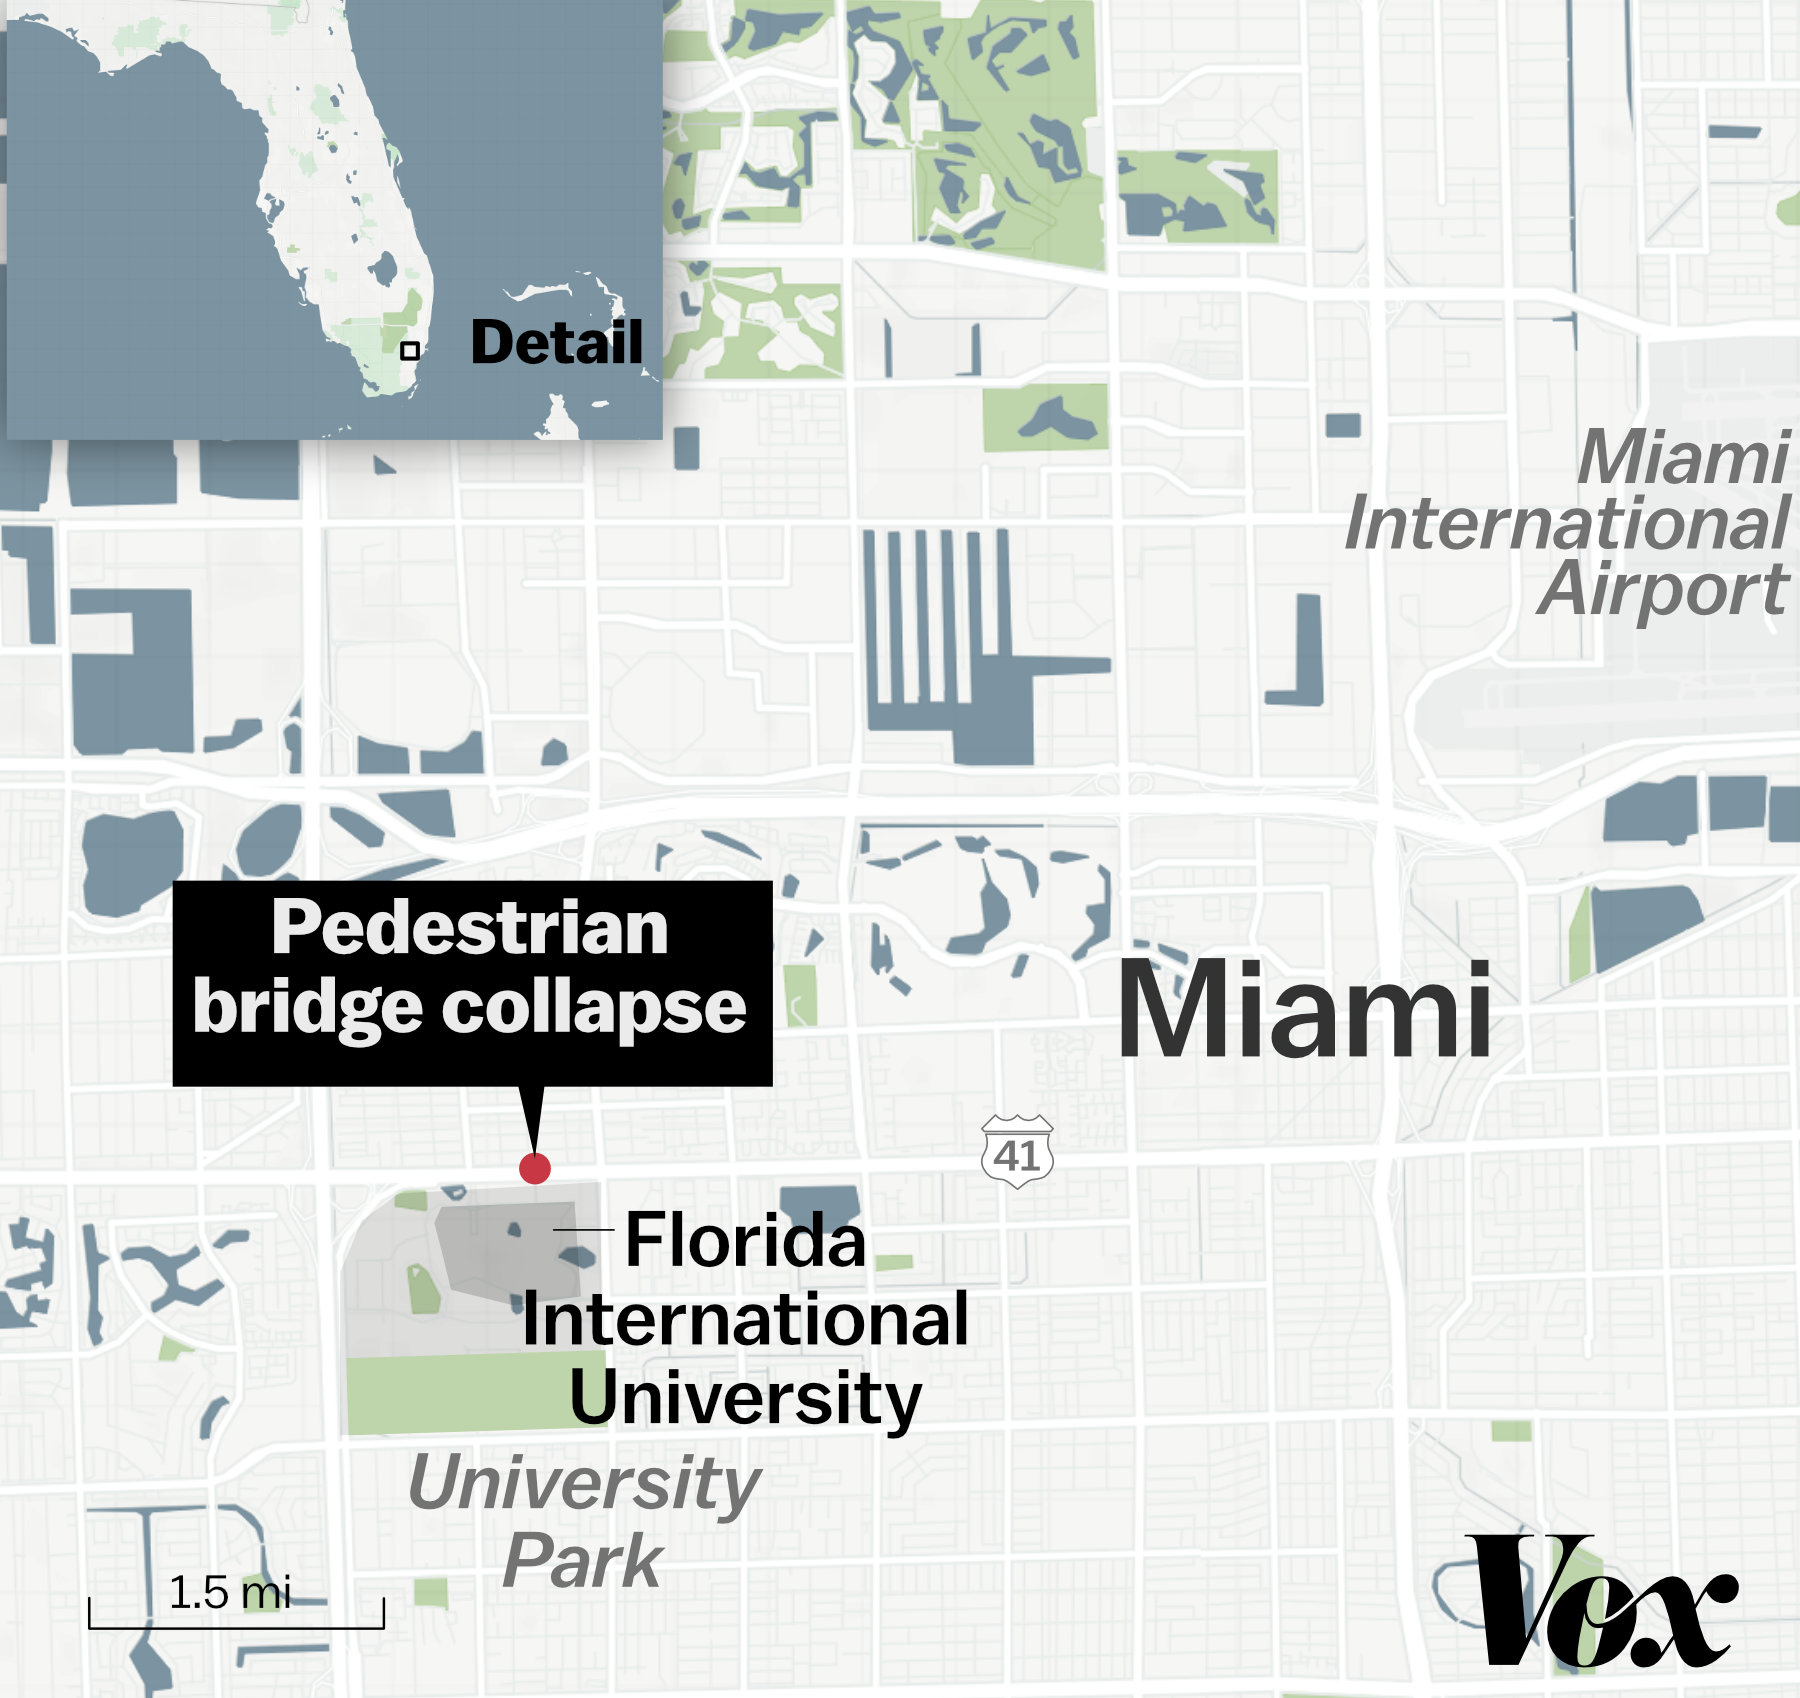 Miami bridge collapse death toll rises; homicide detectives, Federal Bureau of Investigation scour scene